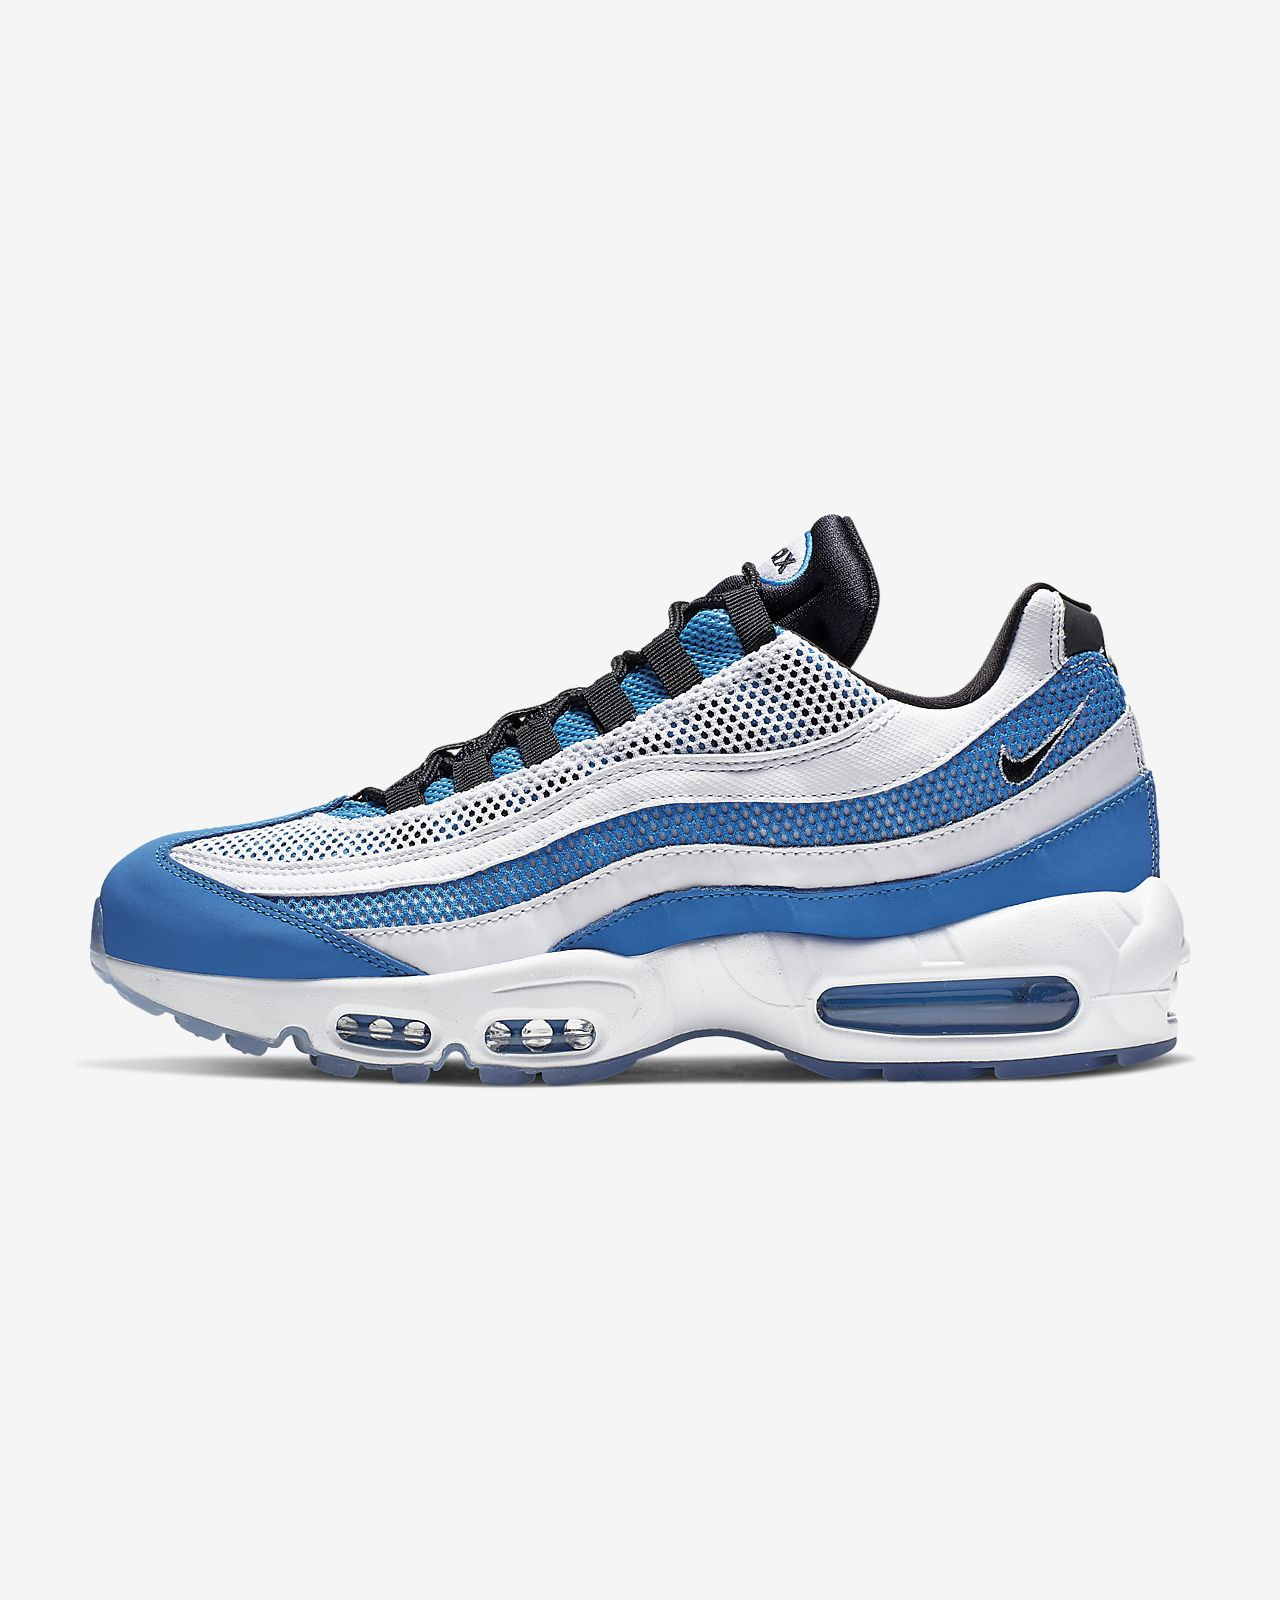 online retailer e092a fc456 ... Nike Air Max 95 Essential Men s Shoe